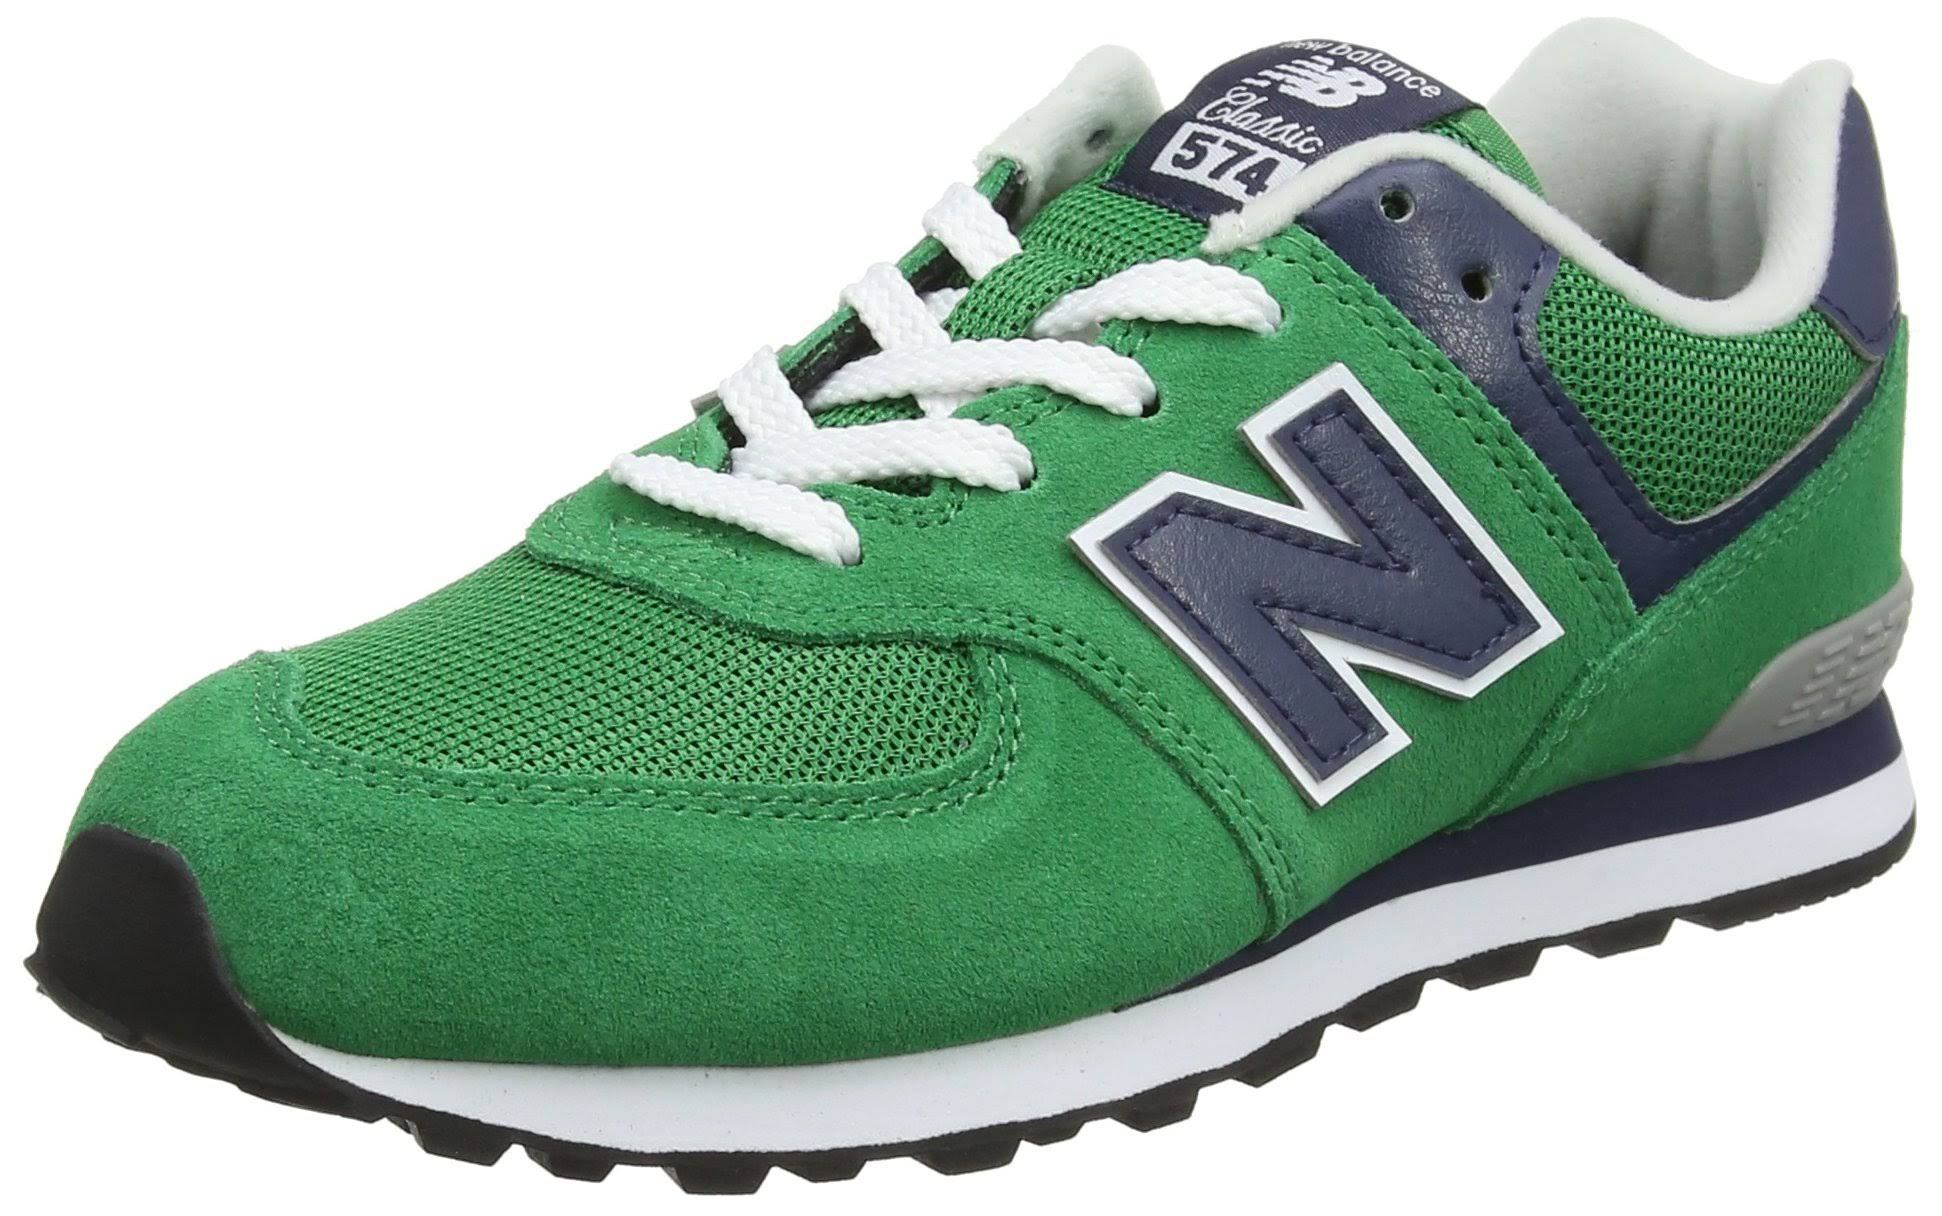 4 Green 5 green Balance New Eu Uk Adults 37 Gc574gn Unisex Trainers 5 aAx7Yq